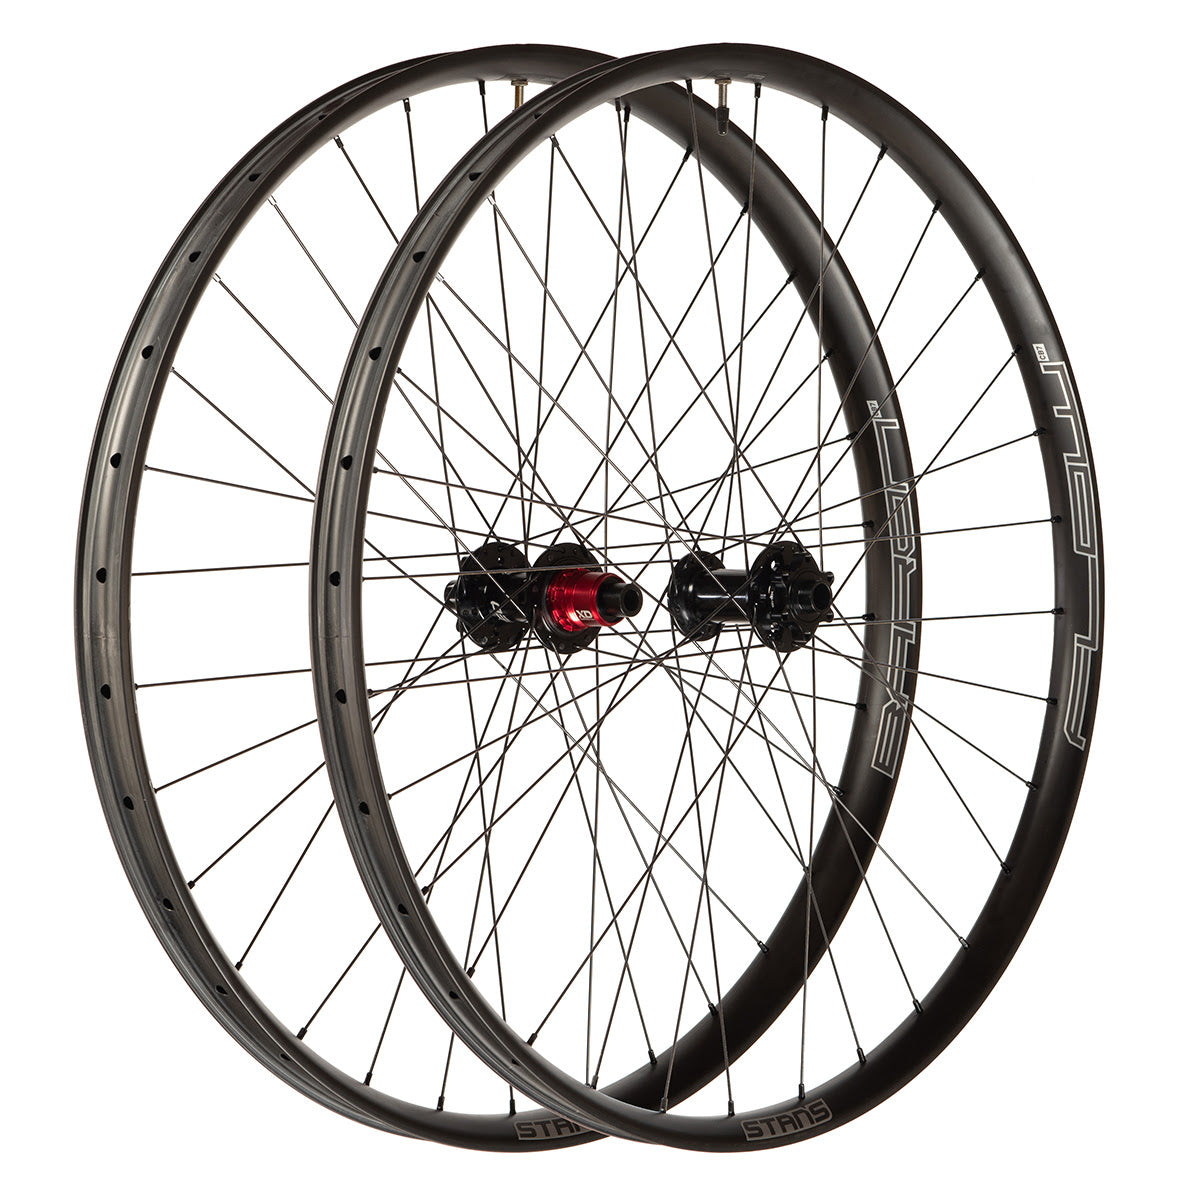 Stans NoTubes Carbon Flow and Baron wheelset